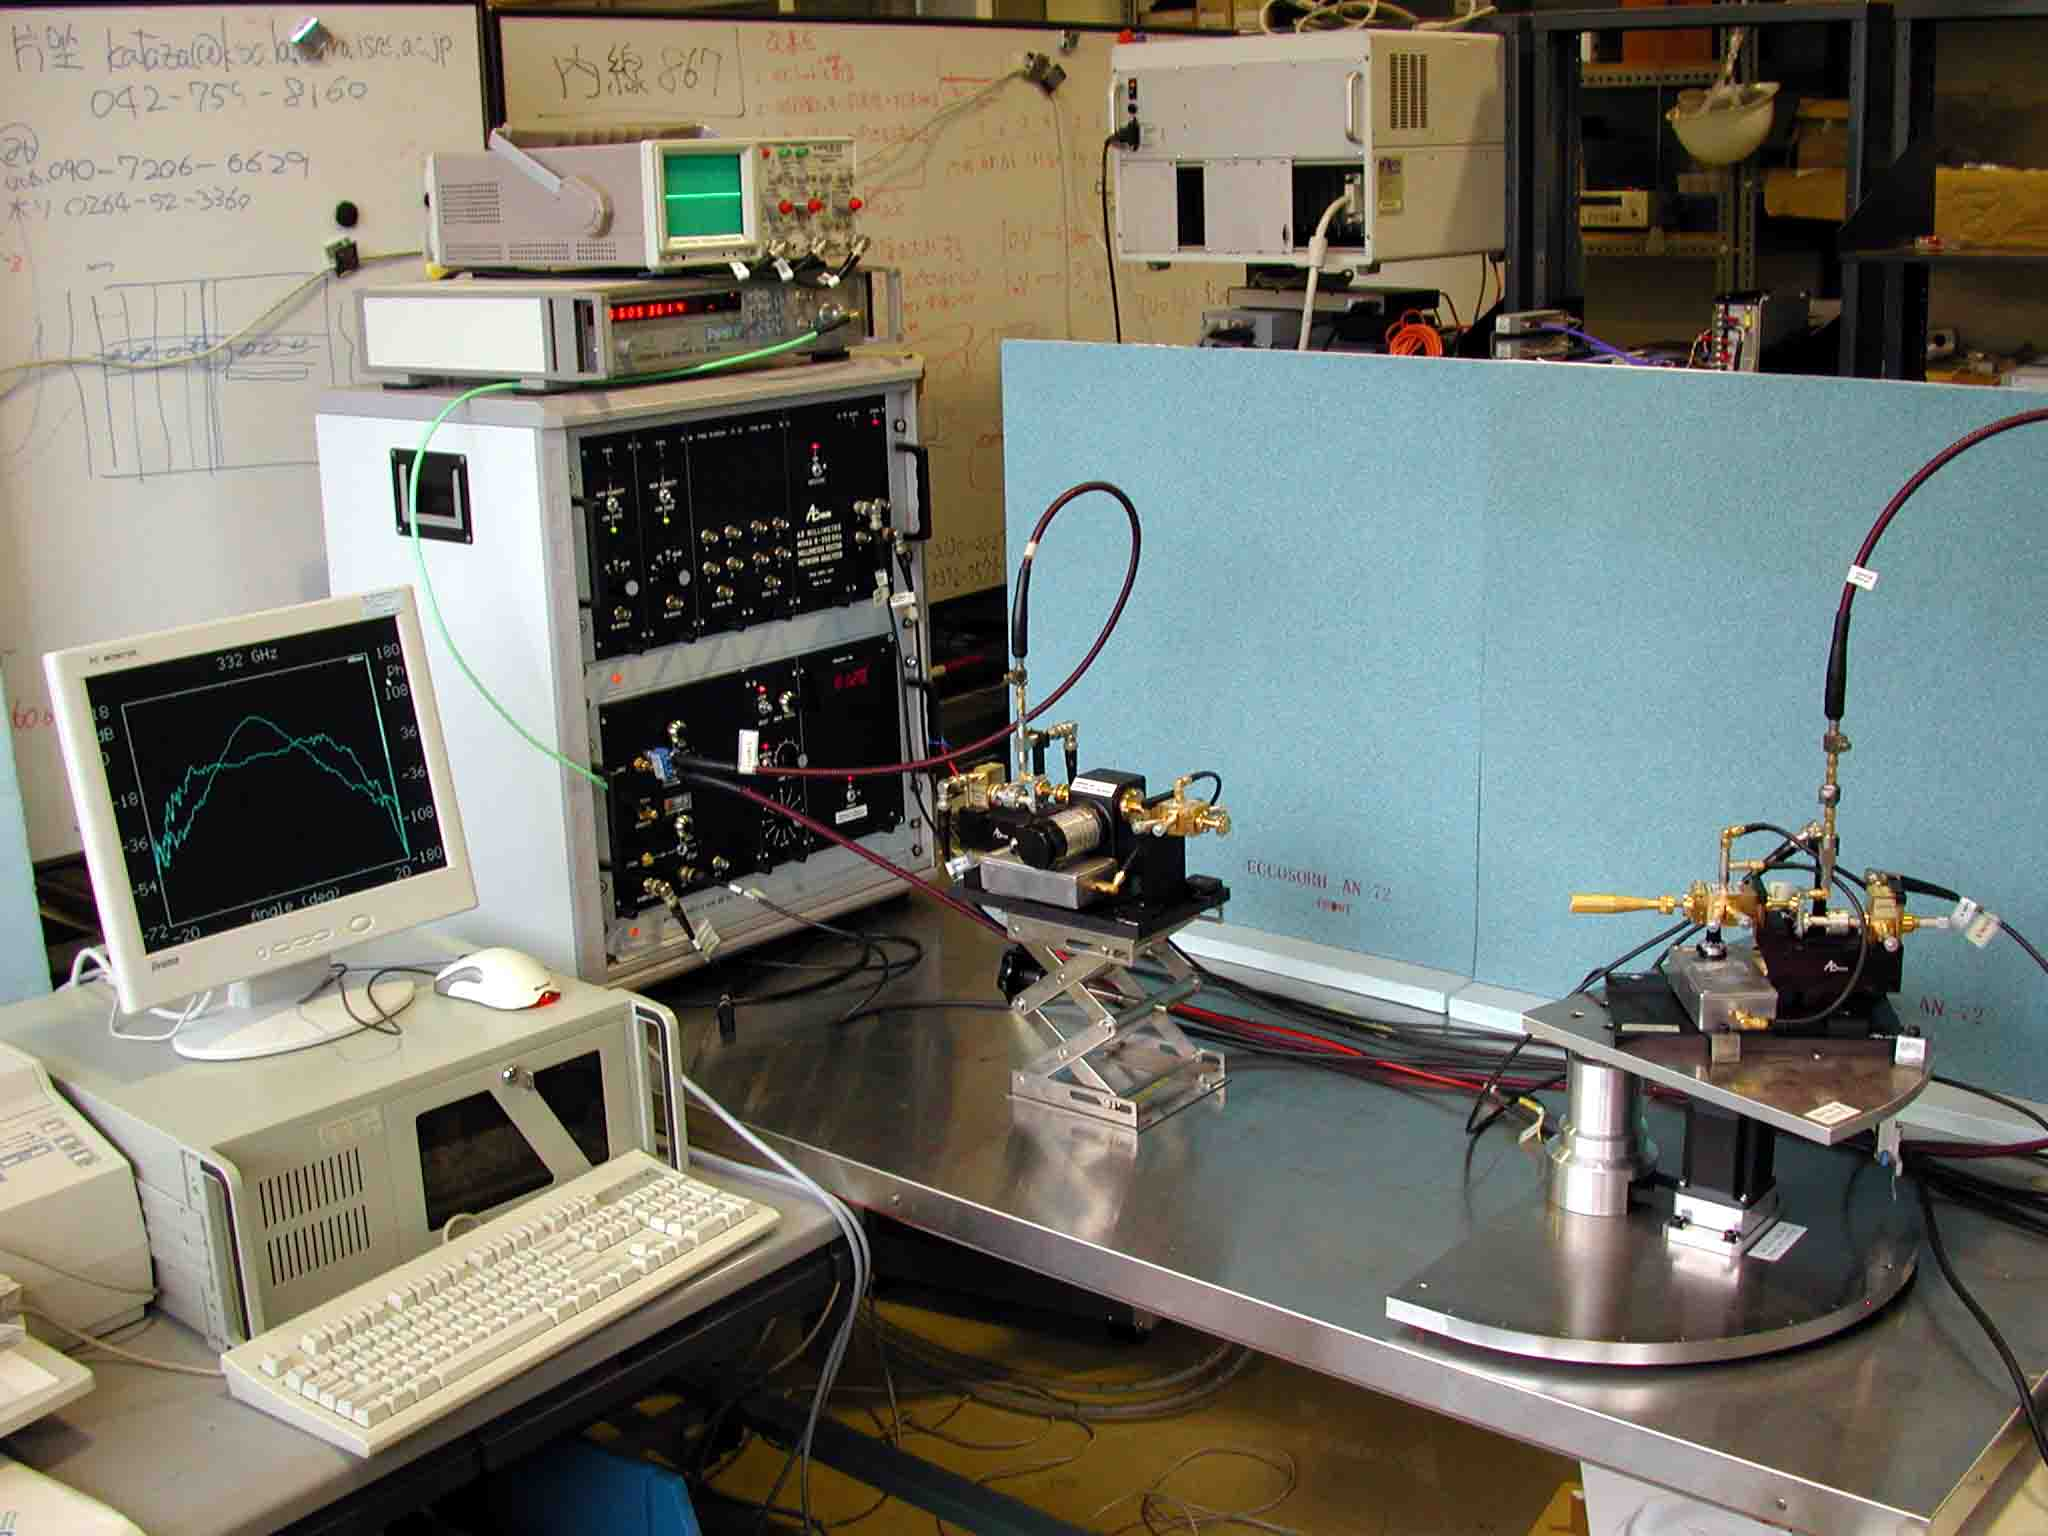 Introduction To The Millimeter Vector Network Analyzer Mvna 8 350 Driver Sending Signals Over A Coaxial Cable Electrical Engineering Example Applications Of